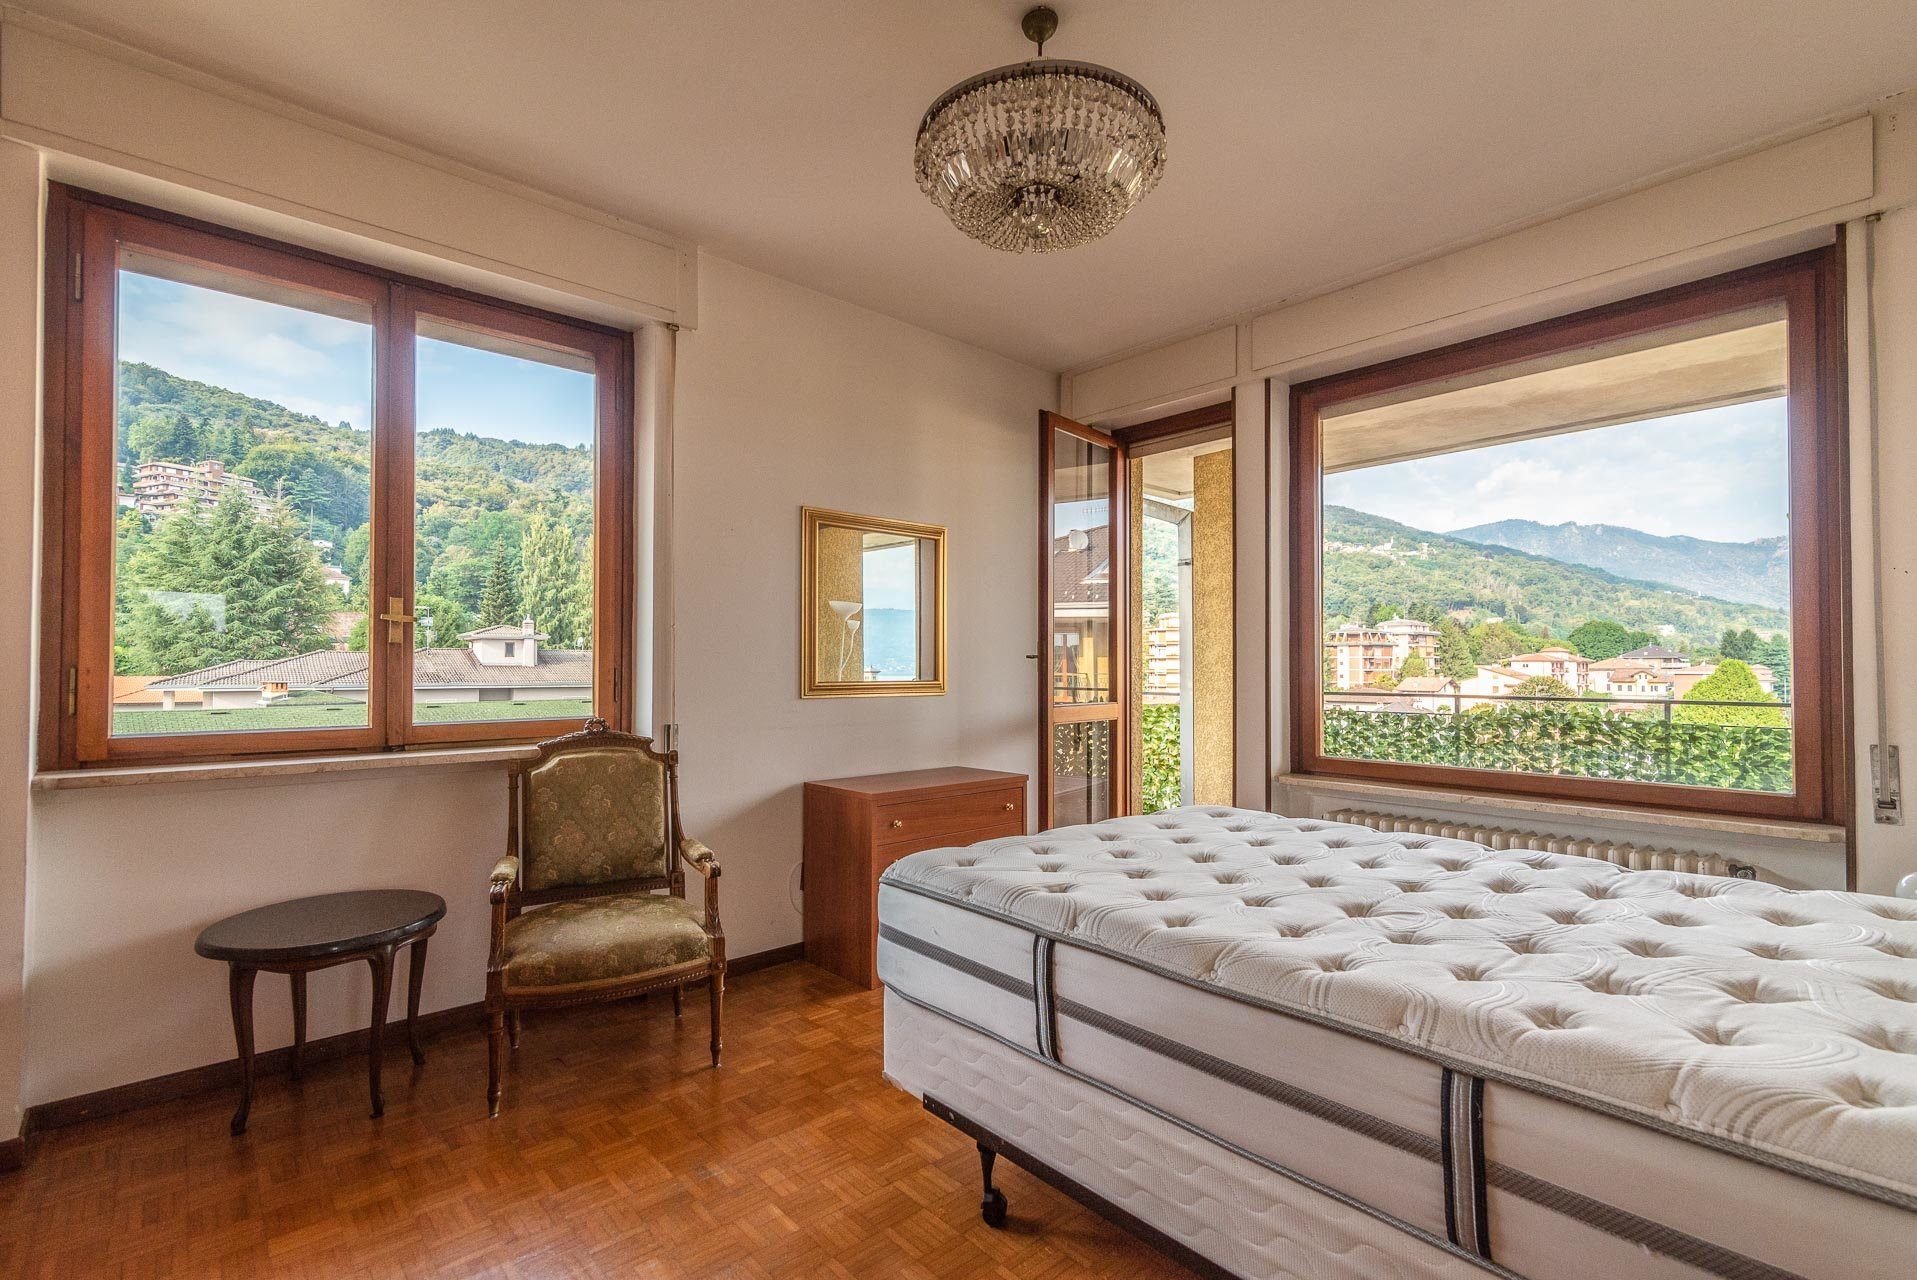 Apartment for rent in Stresa - bedroom with balcony